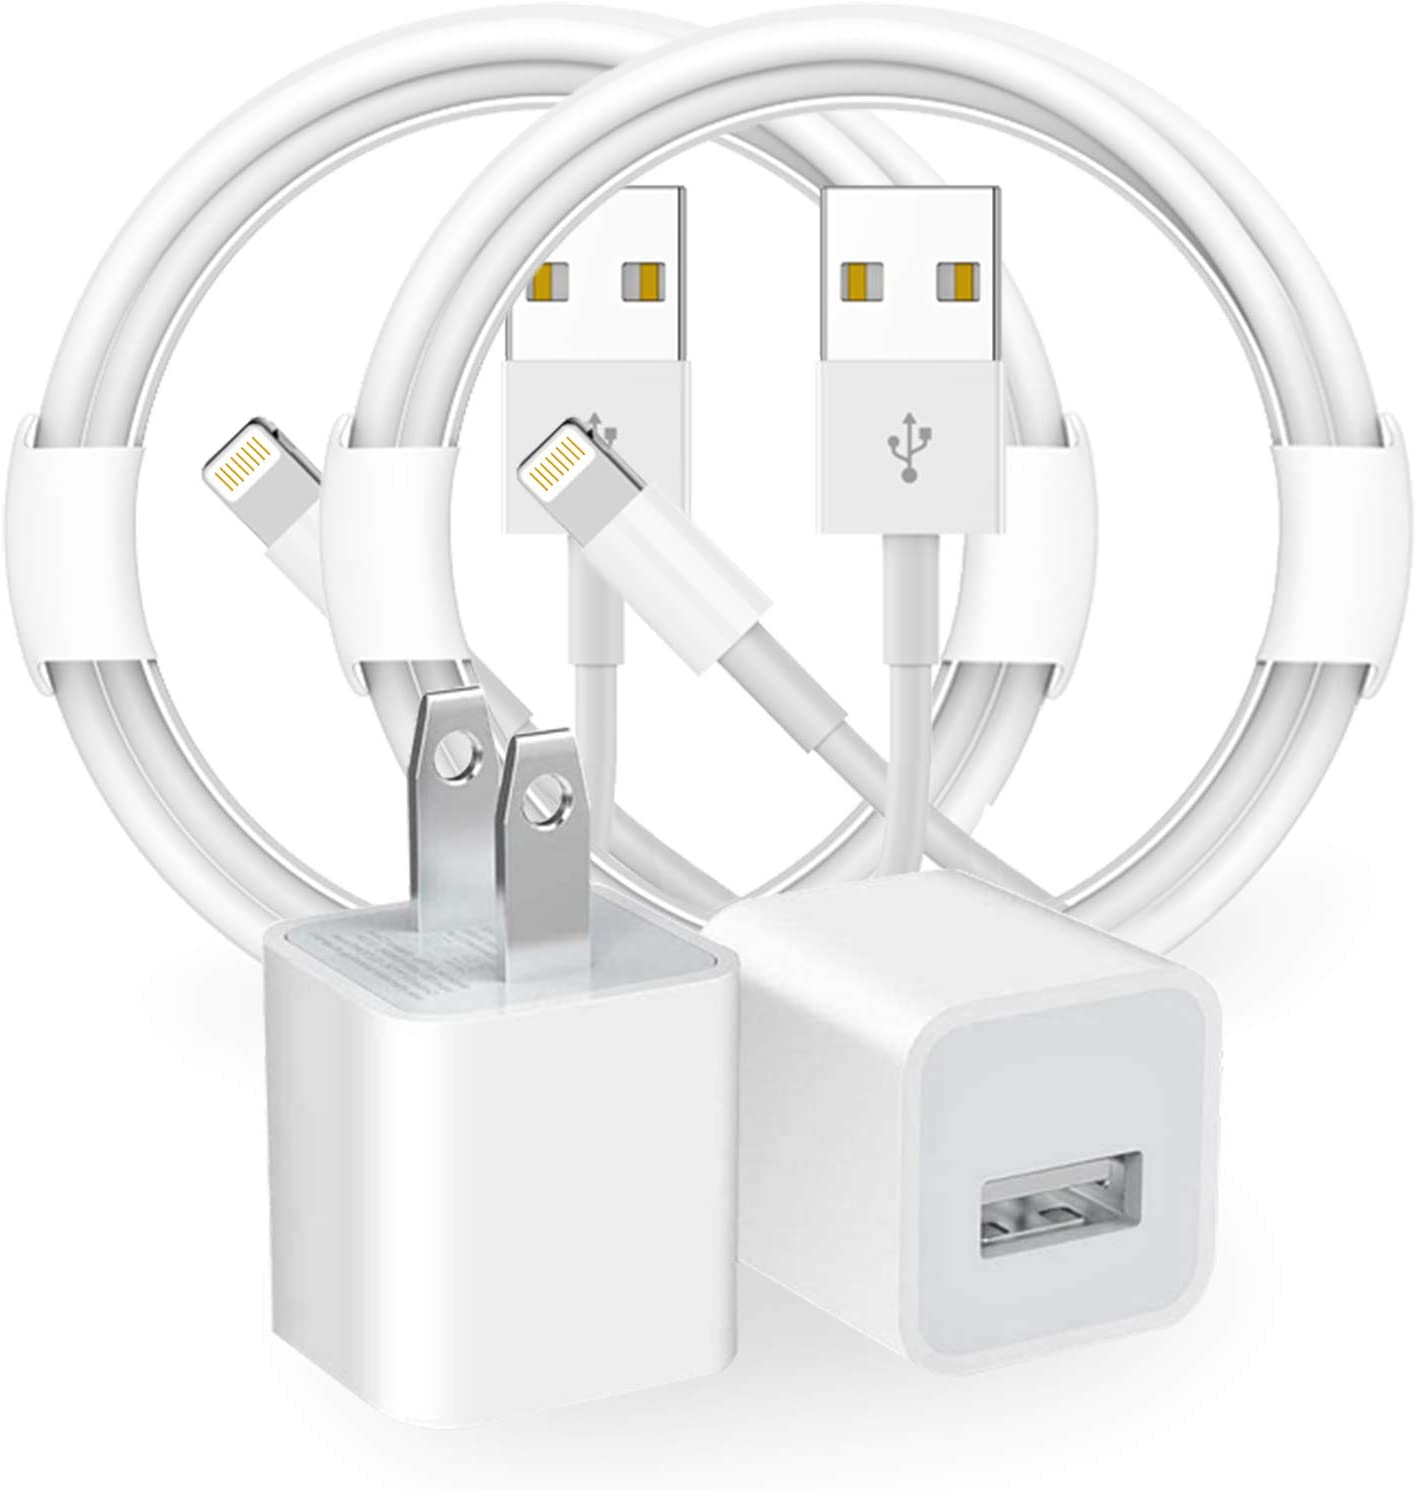 iPhone Charger, 2 Pack Lightning to USB Fast Charging